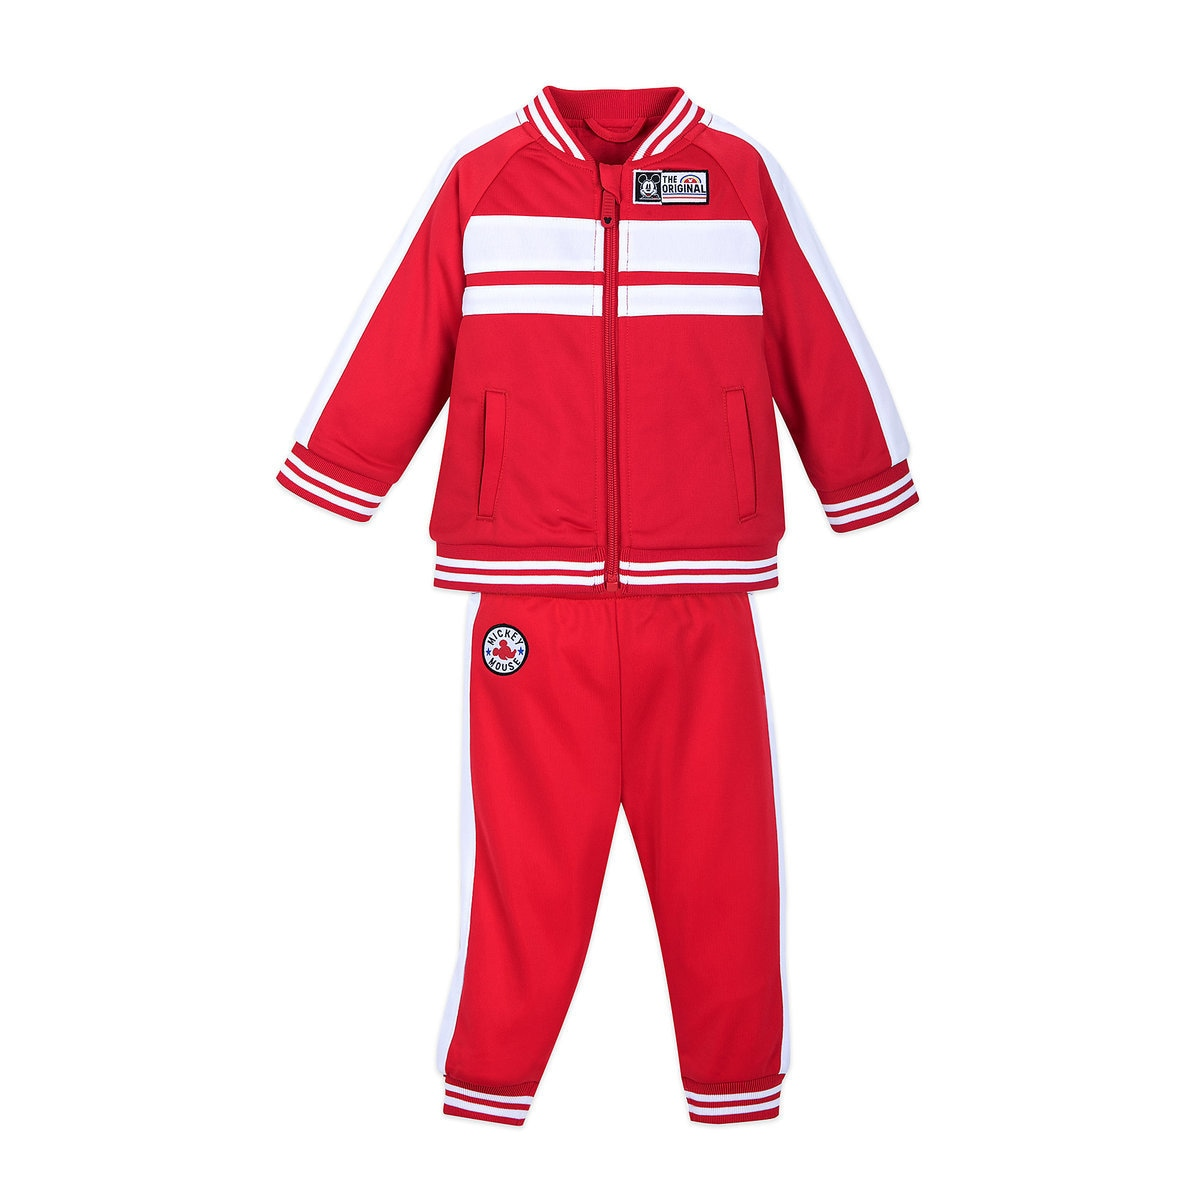 ecbf89627 Product Image of Mickey Mouse Track Suit for Baby - Personalized # 1